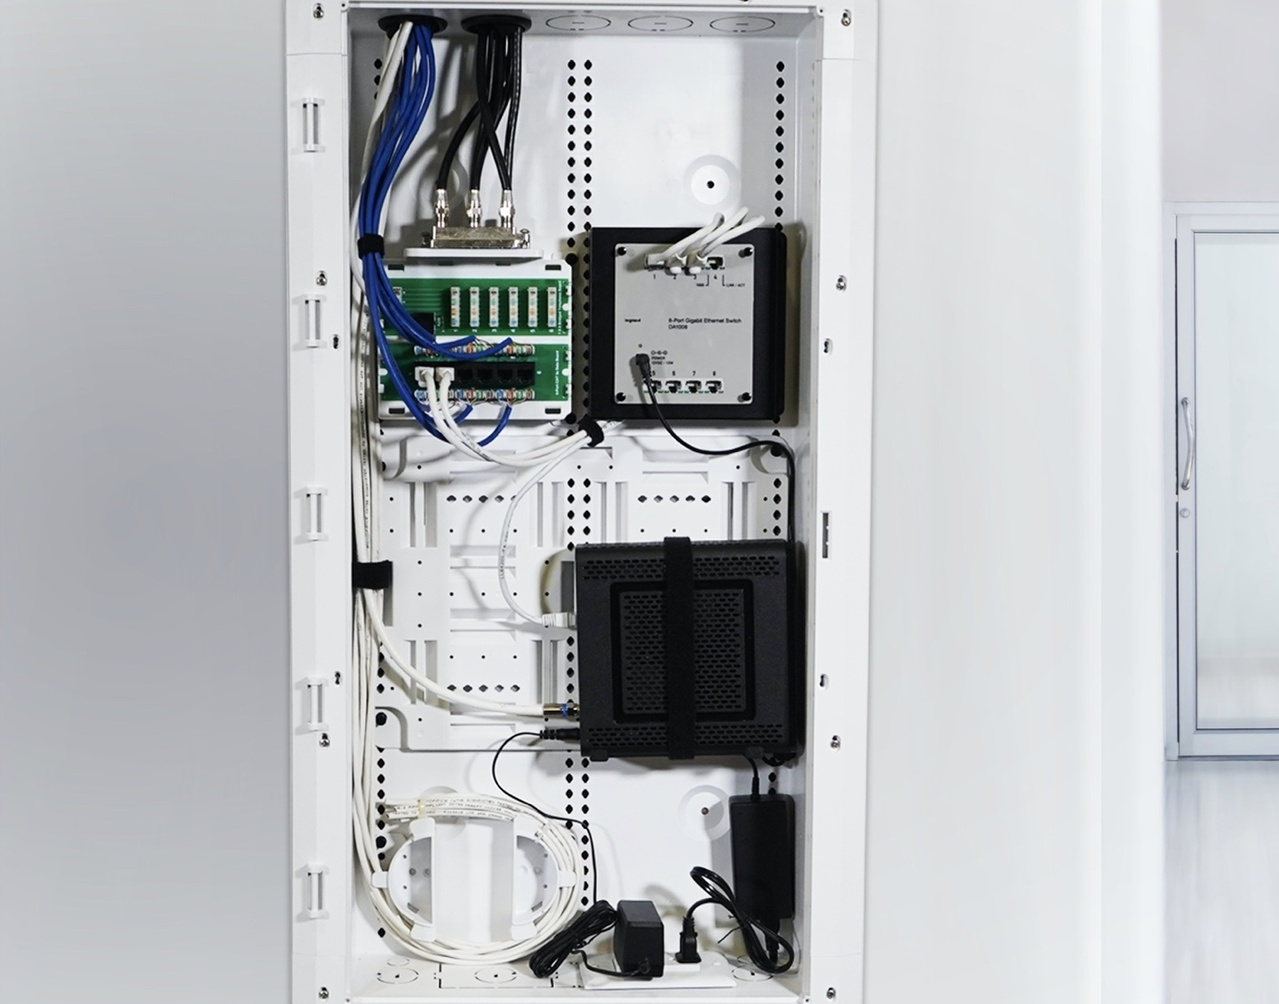 on-q® structured wiring, connectivity and smart home solutions | legrand  legrand us